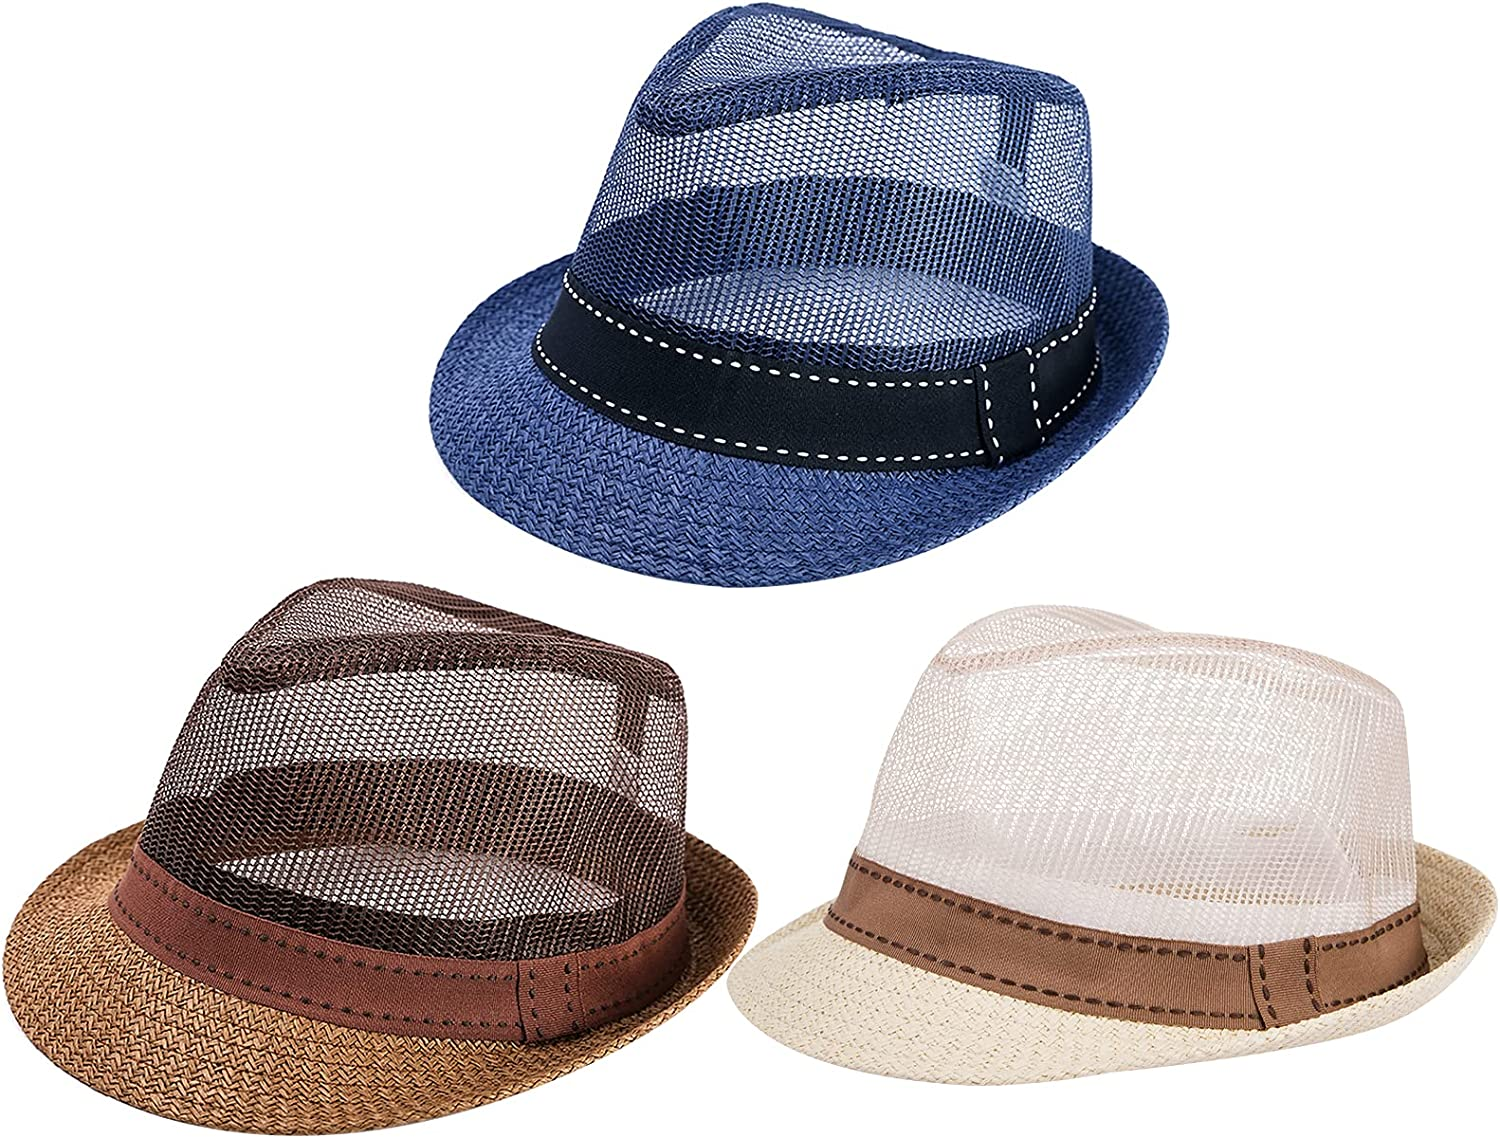 3 Packs Breathable Mesh Max 83% OFF Many popular brands Top Sun Ventilated Hat- Unisex